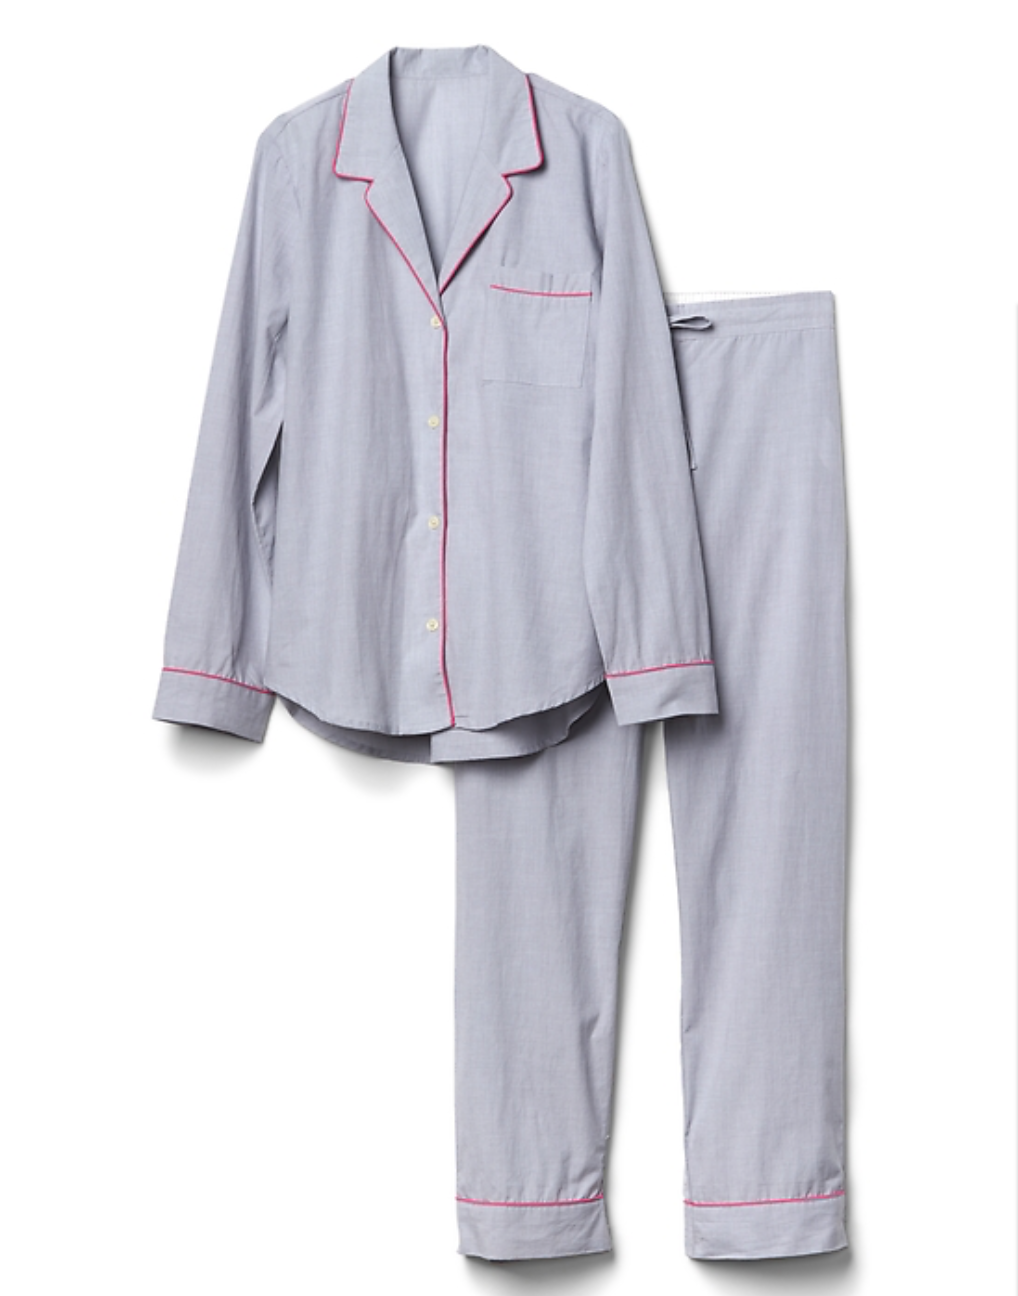 Gap Breast Cancer Awareness 2017 pajamas